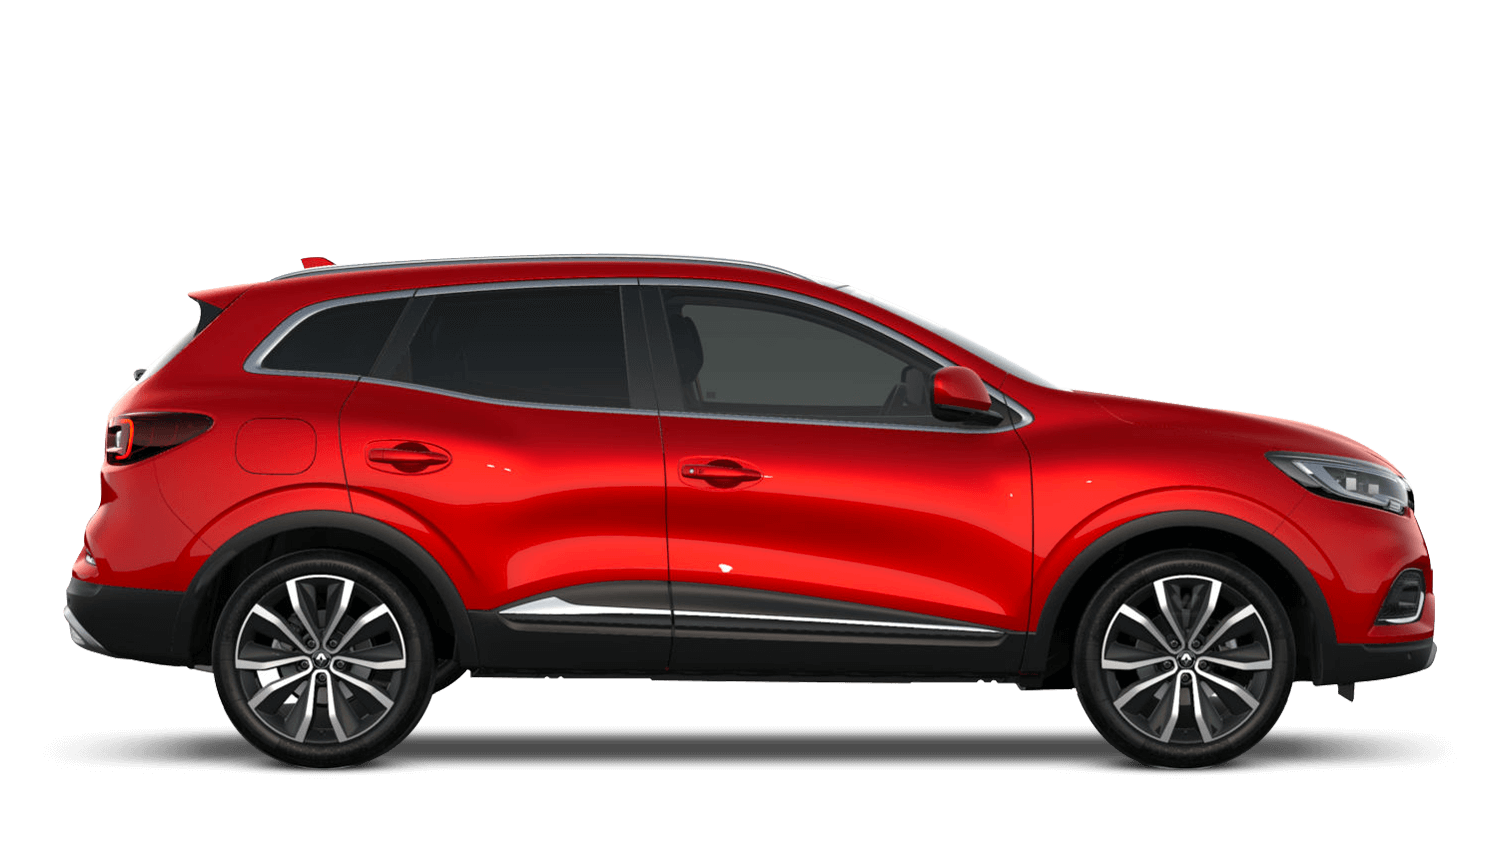 Flame Red New Renault KADJAR